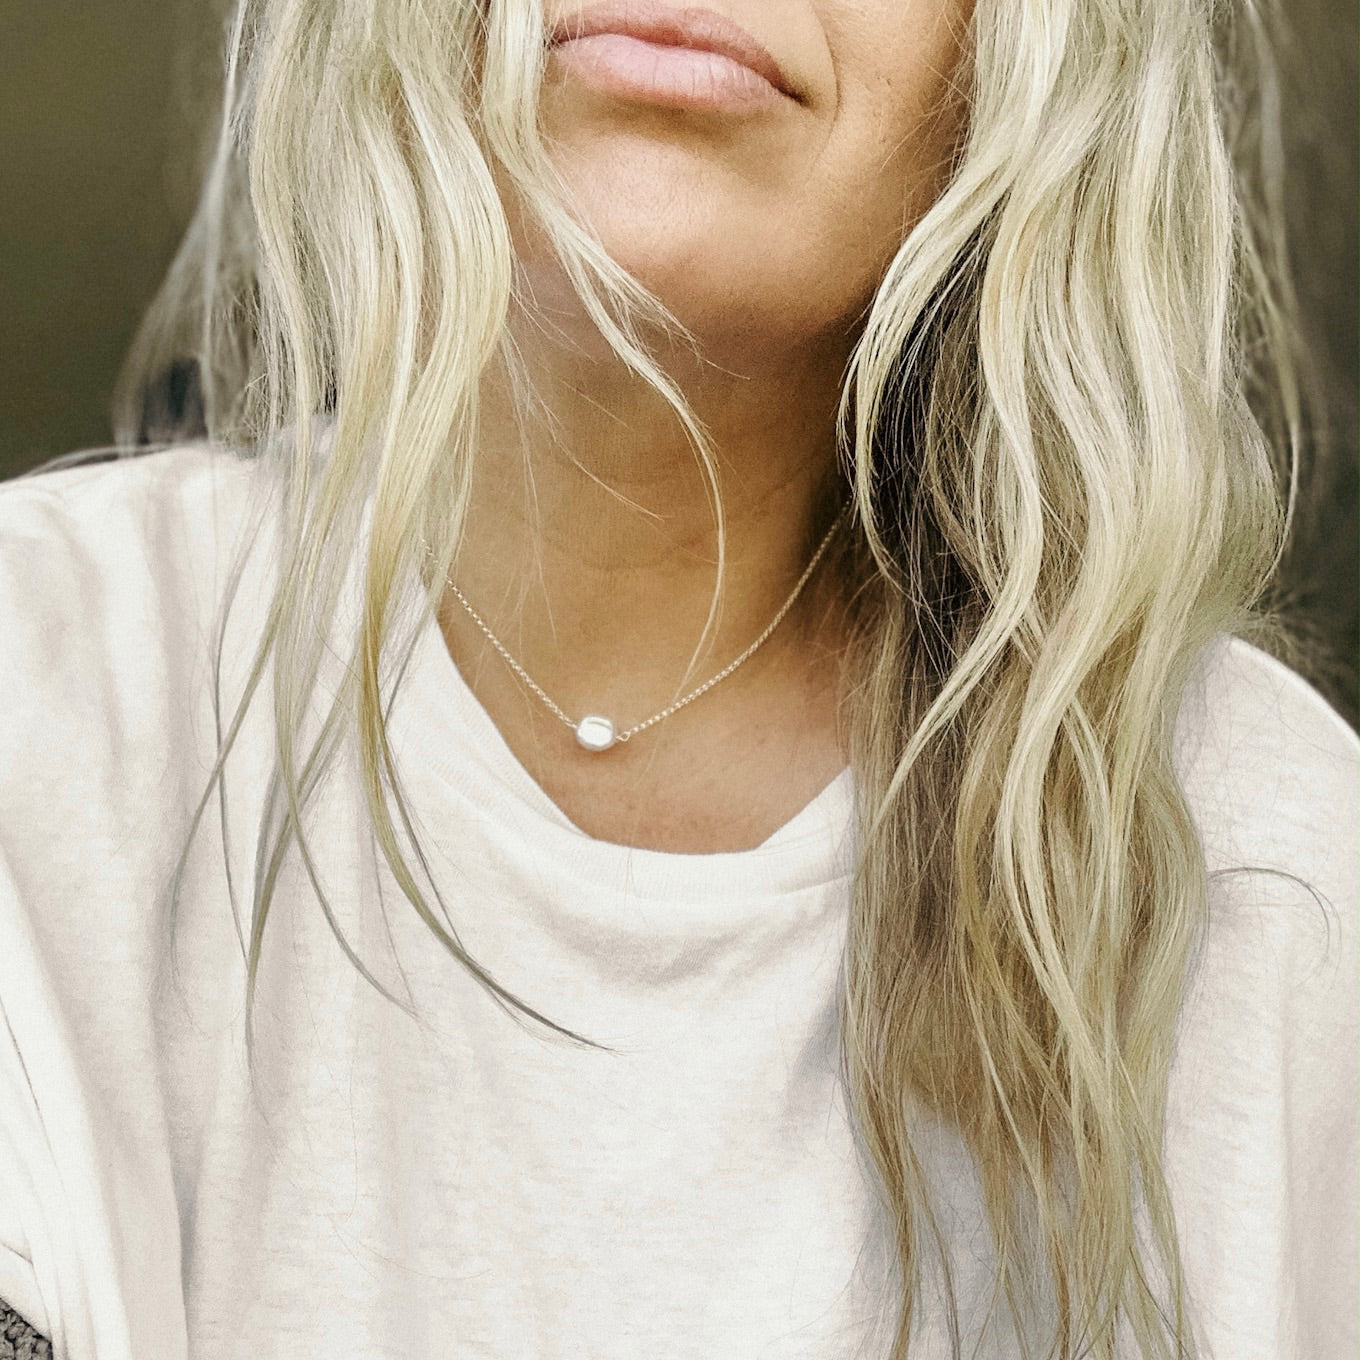 a selfie of a blonde woman wearing a white tee shirt and small pearl necklace on a silver chain